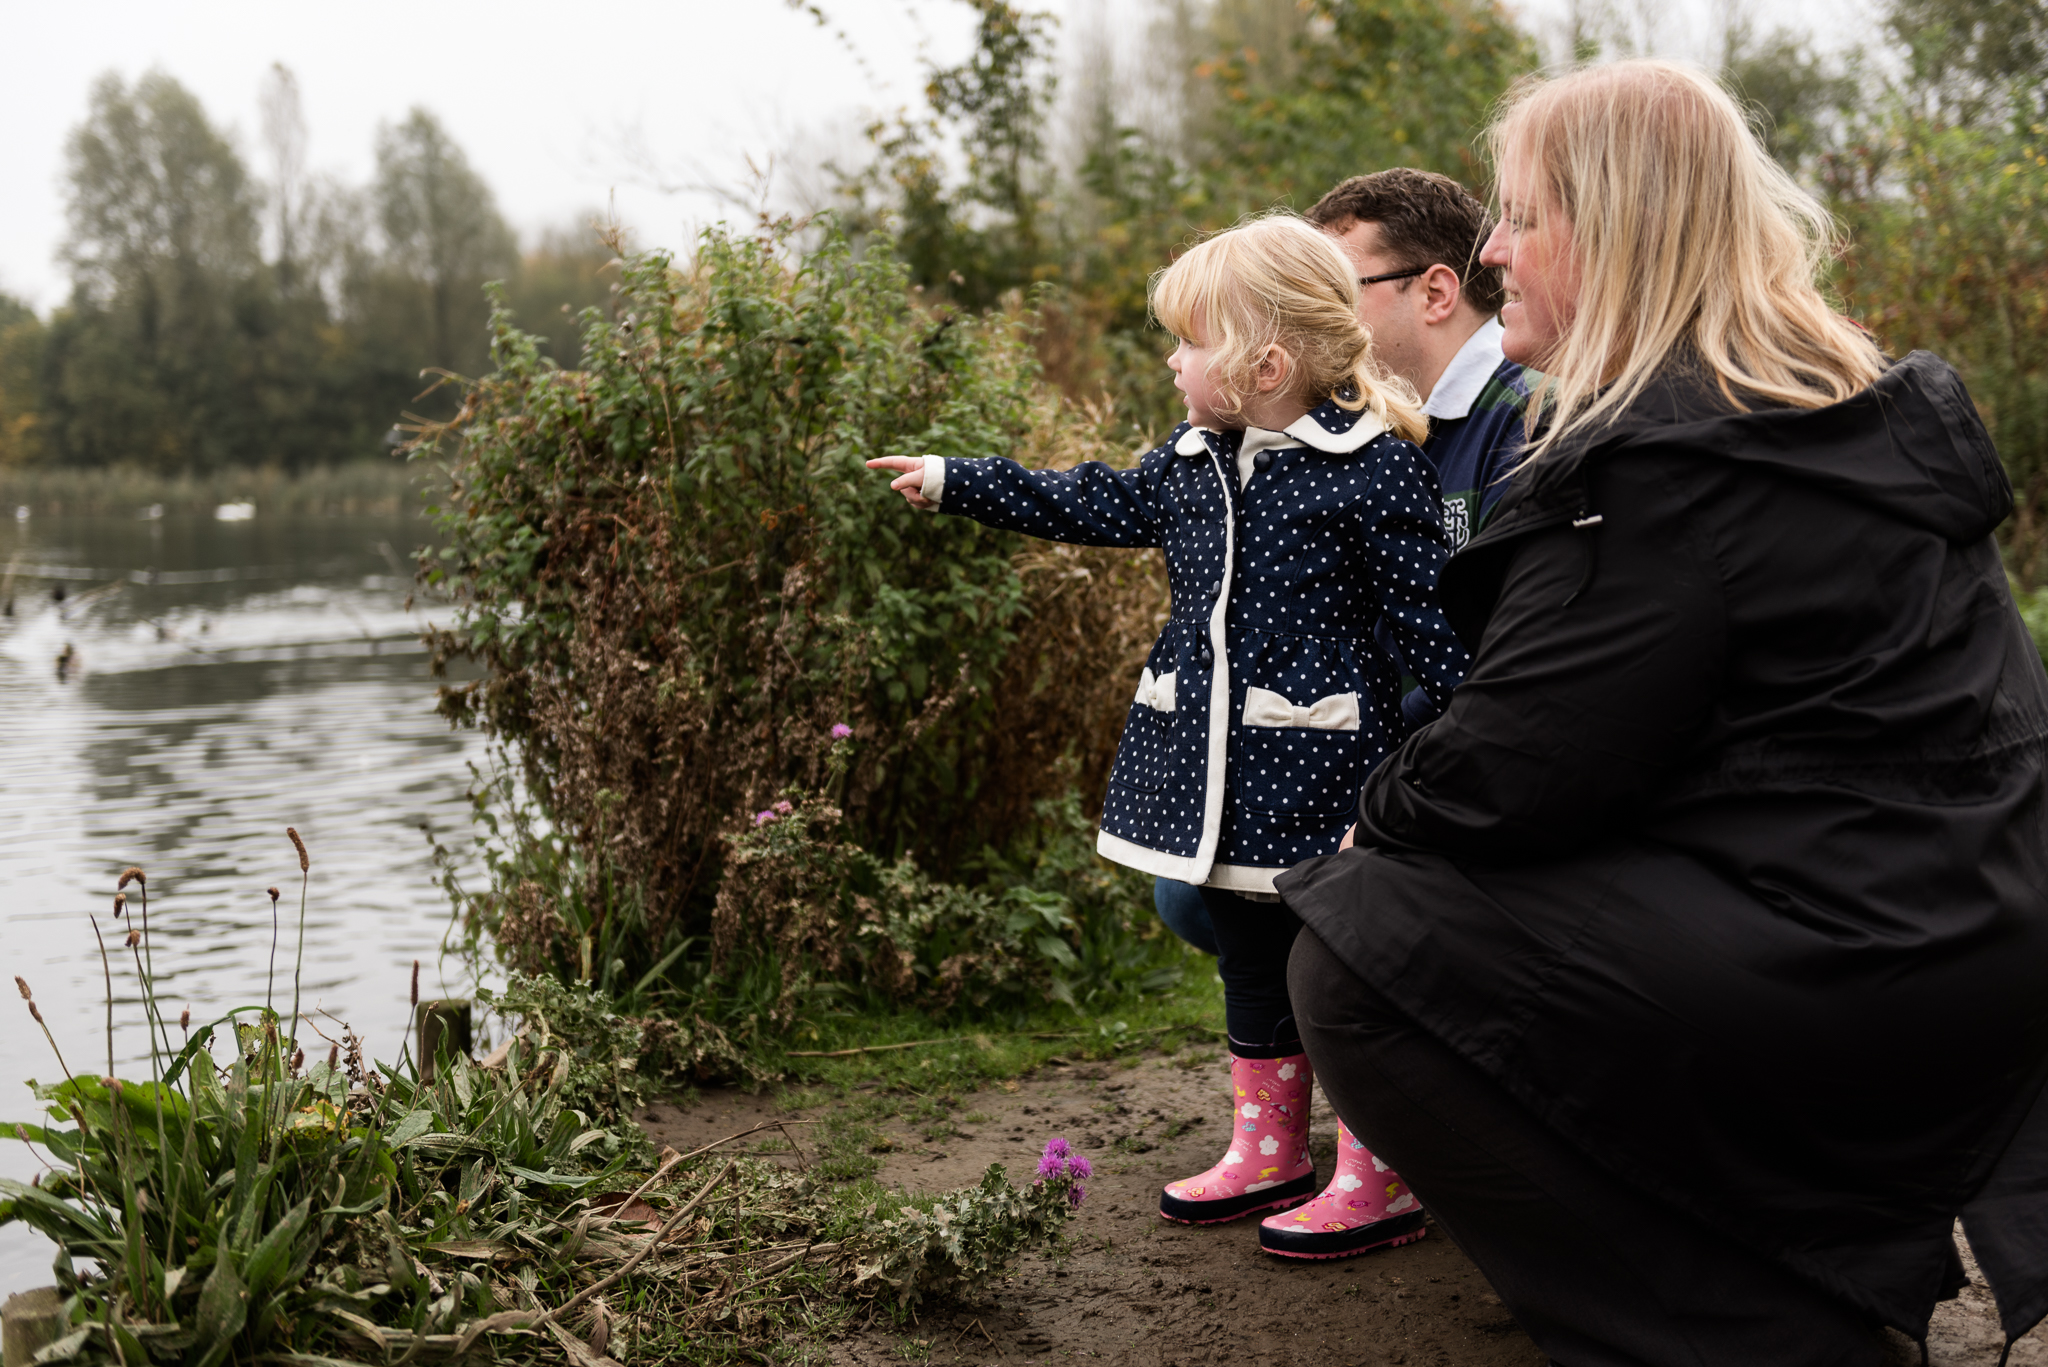 Staffordshire Documentary Family Photography Autumn Lifestyle Fall Leaves - Jenny Harper-3.jpg